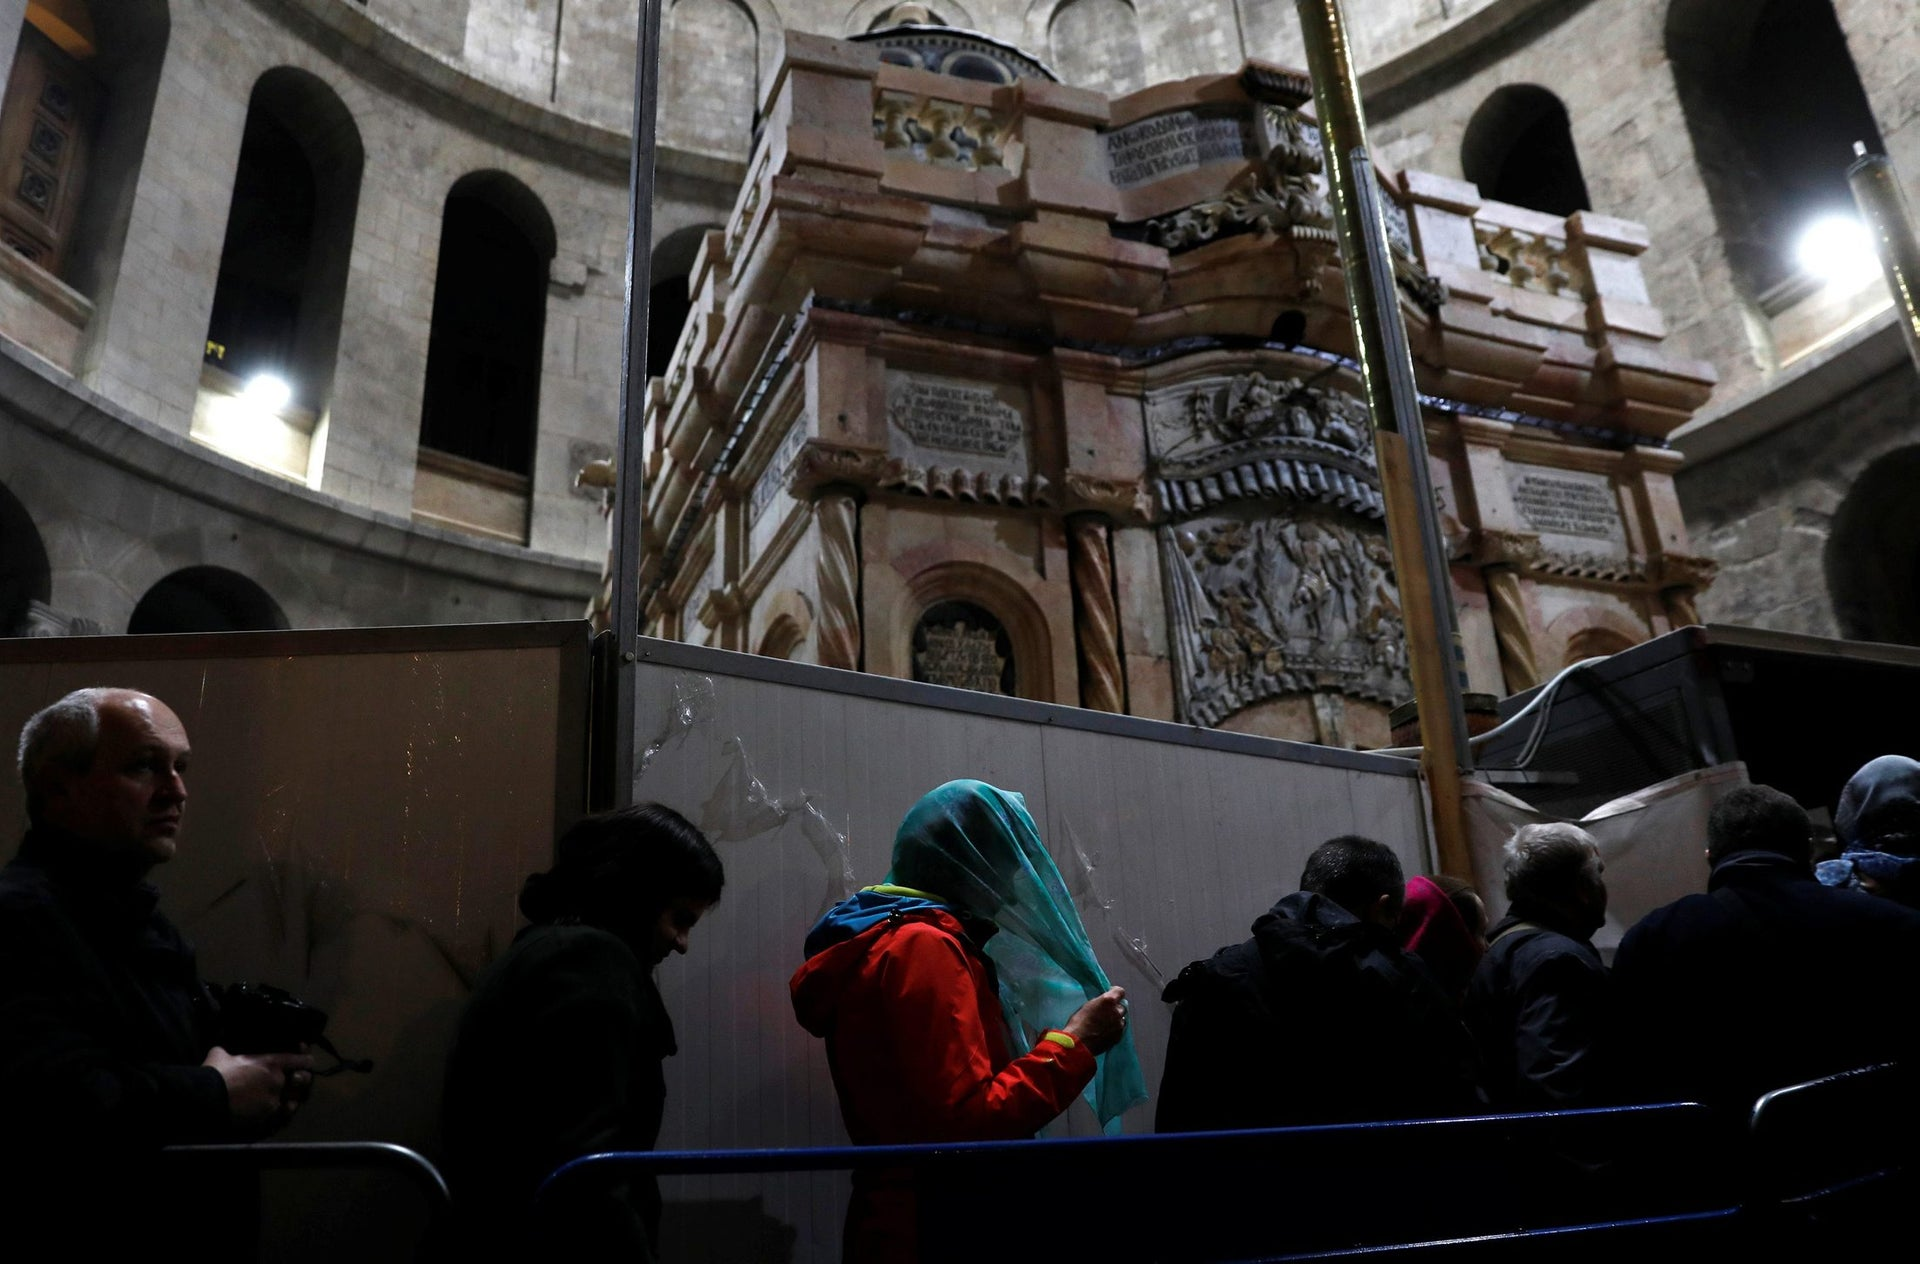 Visitors stand near the newly restored Edicule, the ancient structure housing the tomb, which according to Christian belief is where Jesus's body was anointed and buried, at the Church of the Holy Sepulchre in Jerusalem's Old City March 20, 2017.